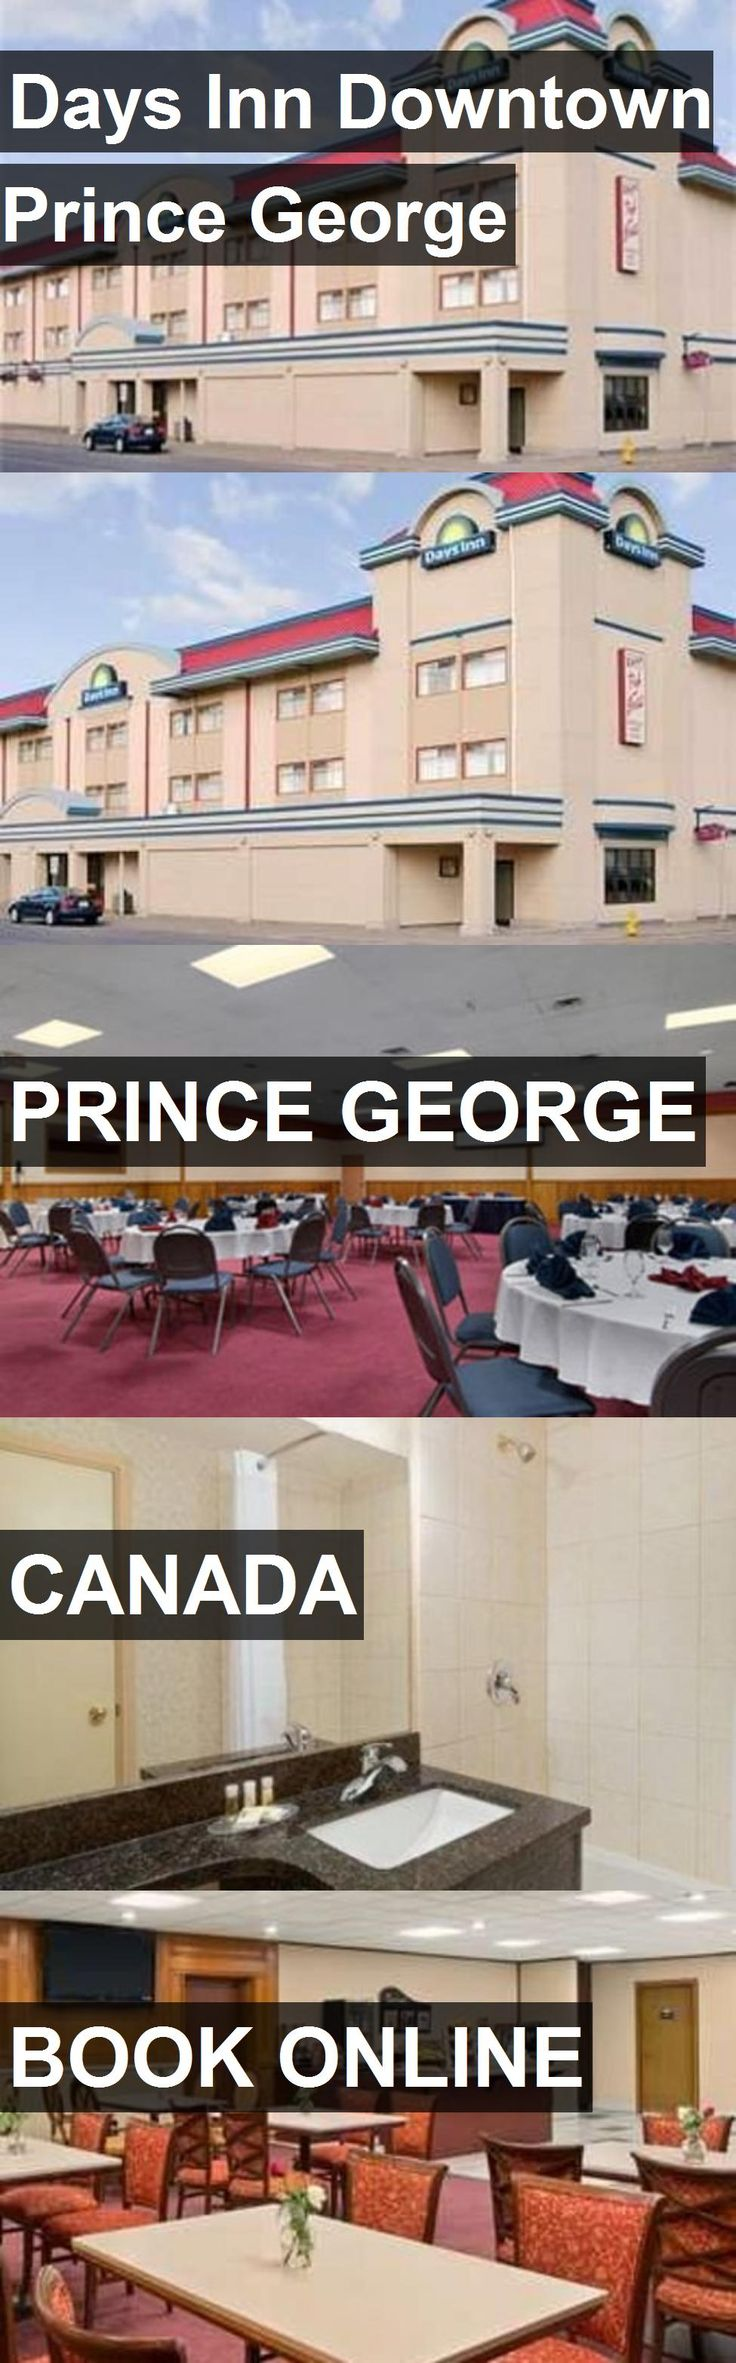 Hotel Days Inn Downtown Prince George in Prince George, Canada. For more information, photos, reviews and best prices please follow the link. #Canada #PrinceGeorge #travel #vacation #hotel